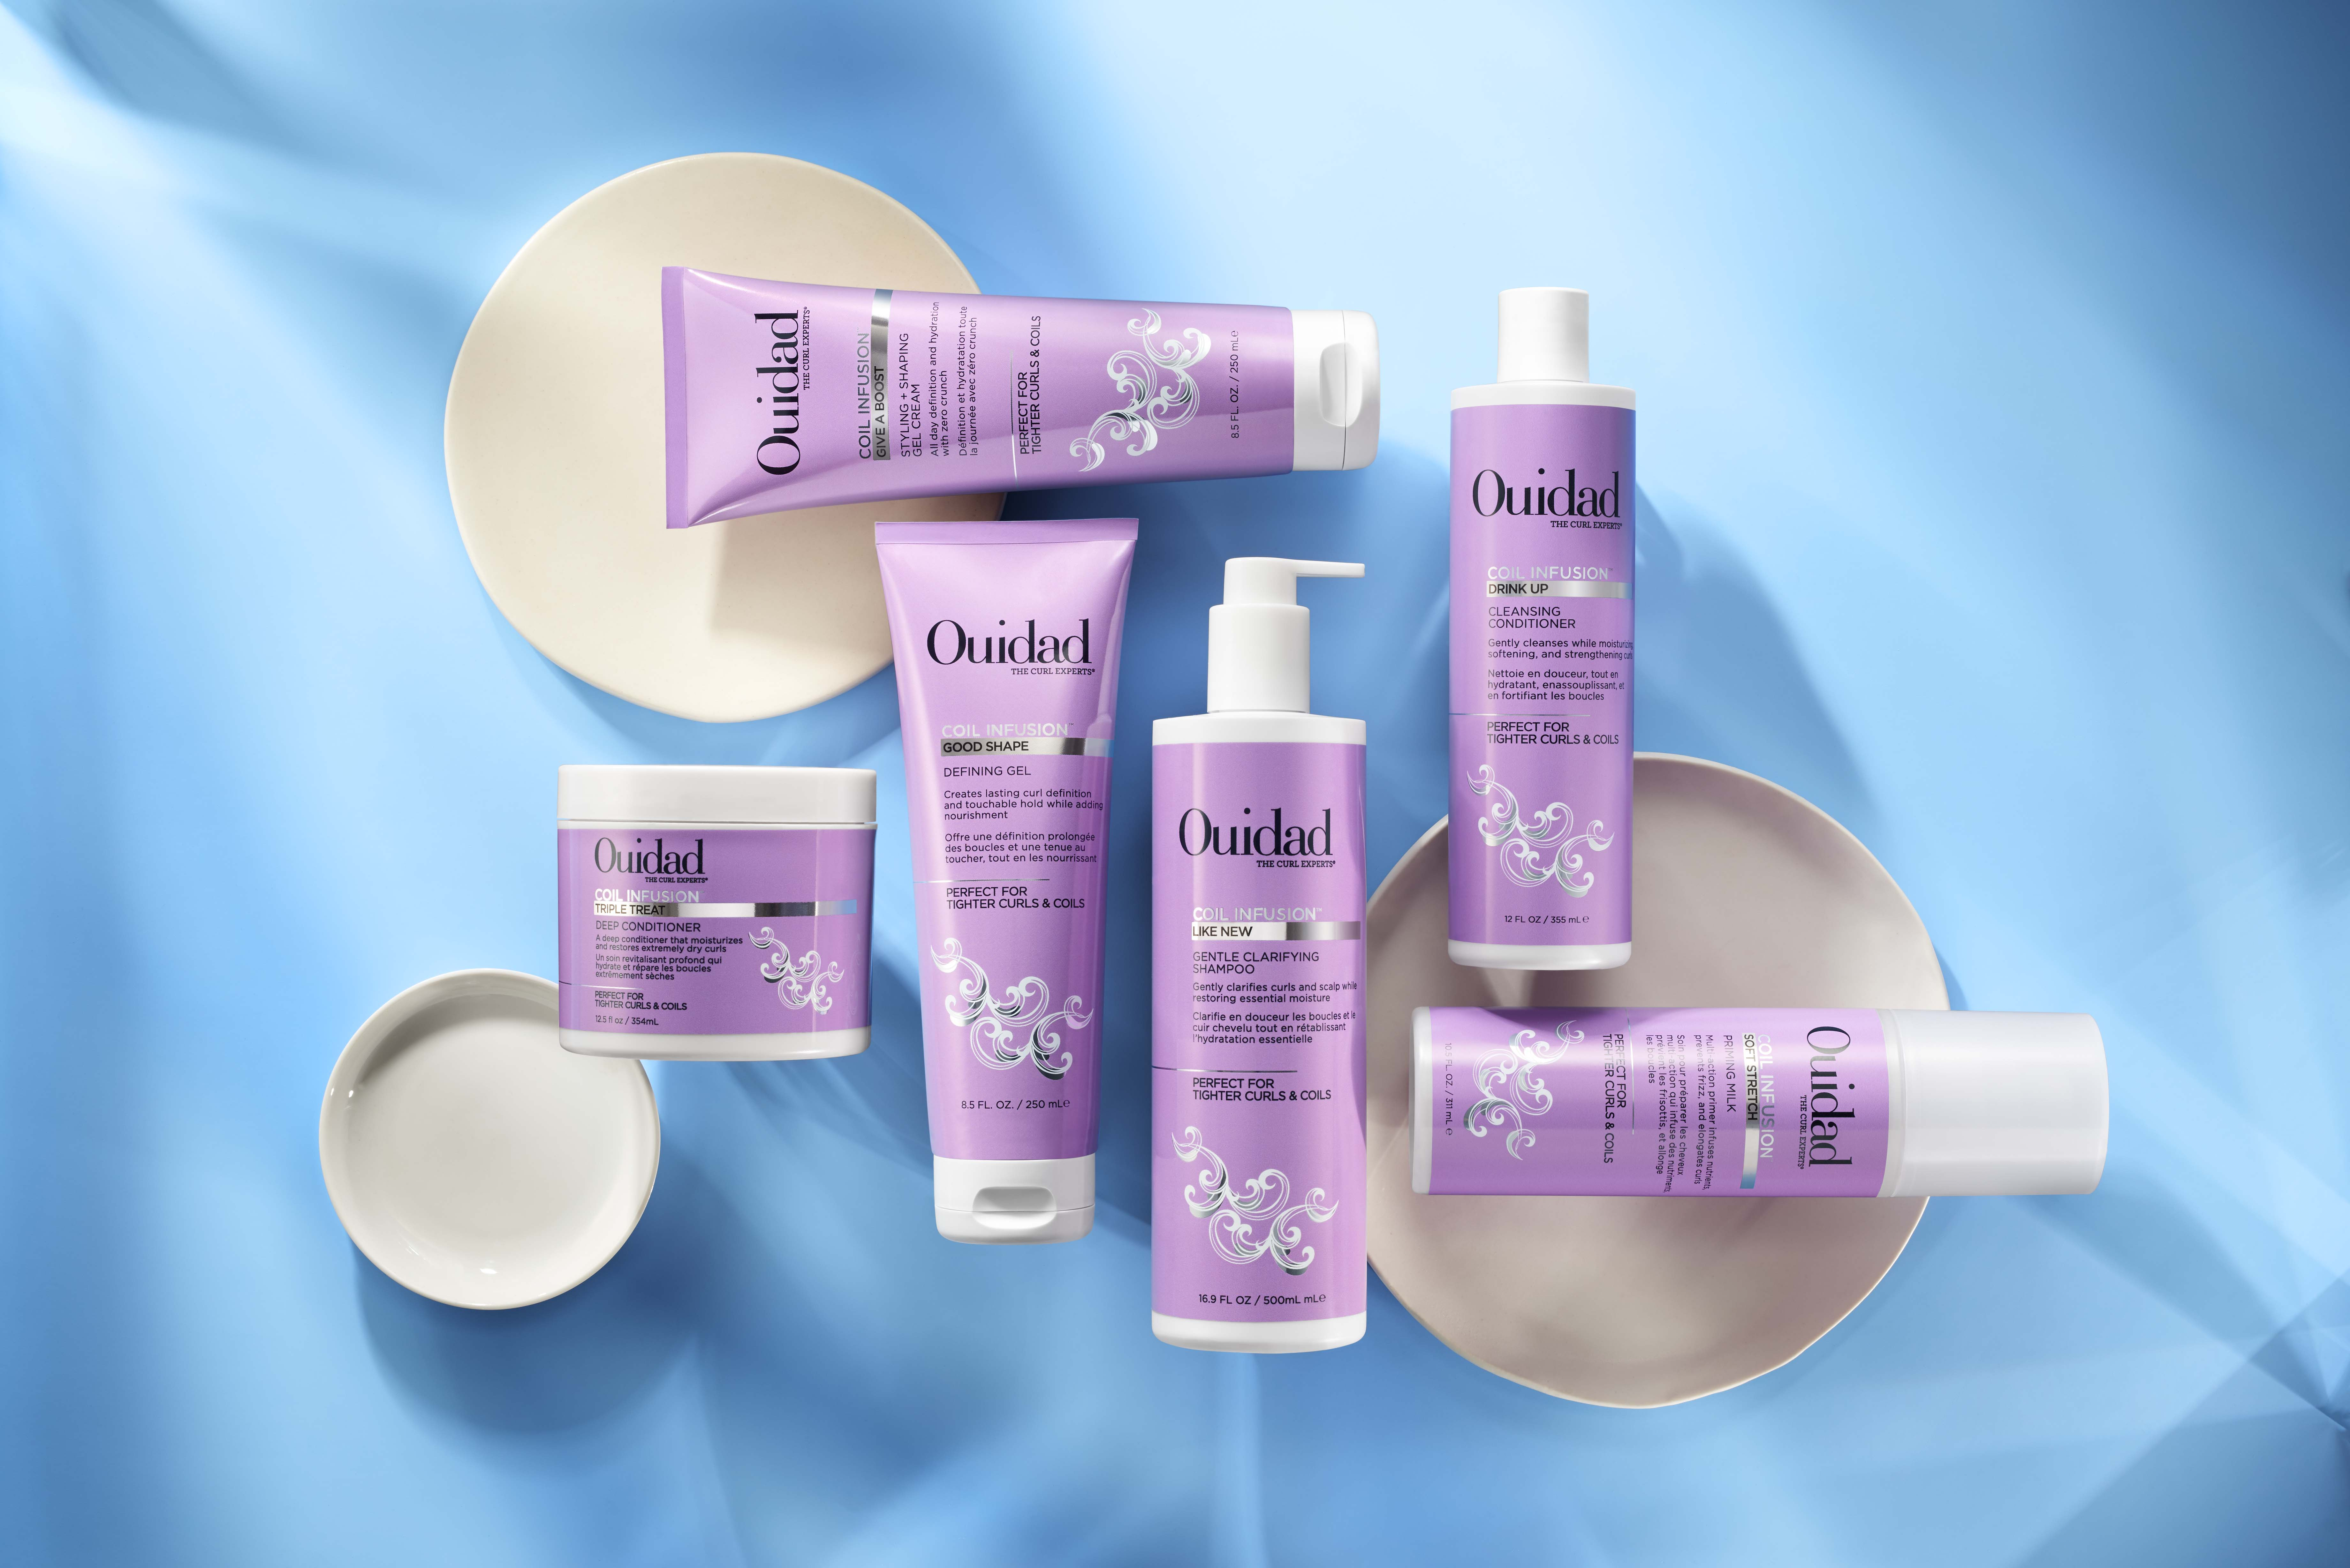 4c hair products